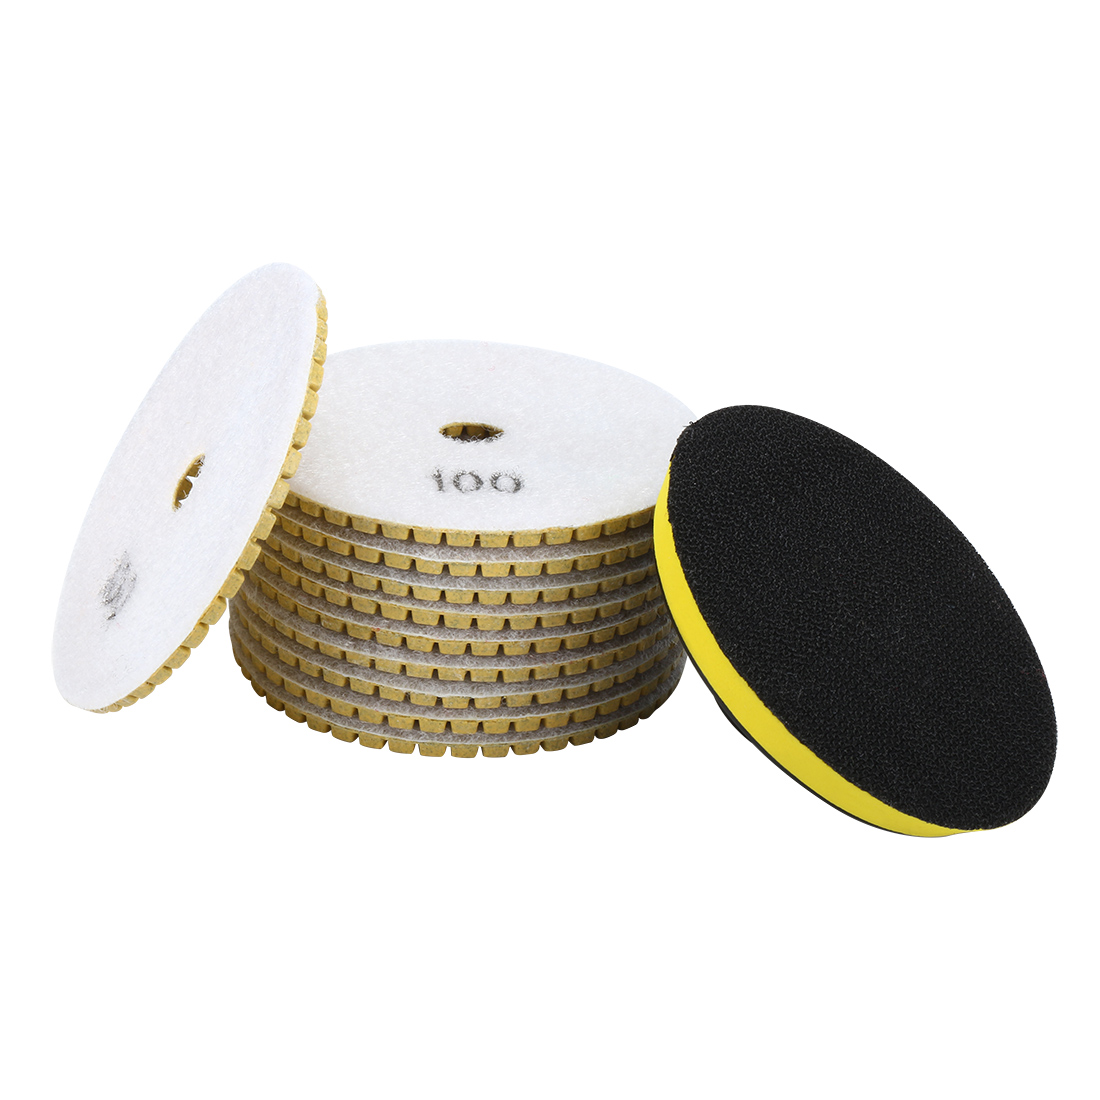 "4"" Diamond Wet Polishing Pad Disc Grit 100 10pcs for Granite Concrete Marble"